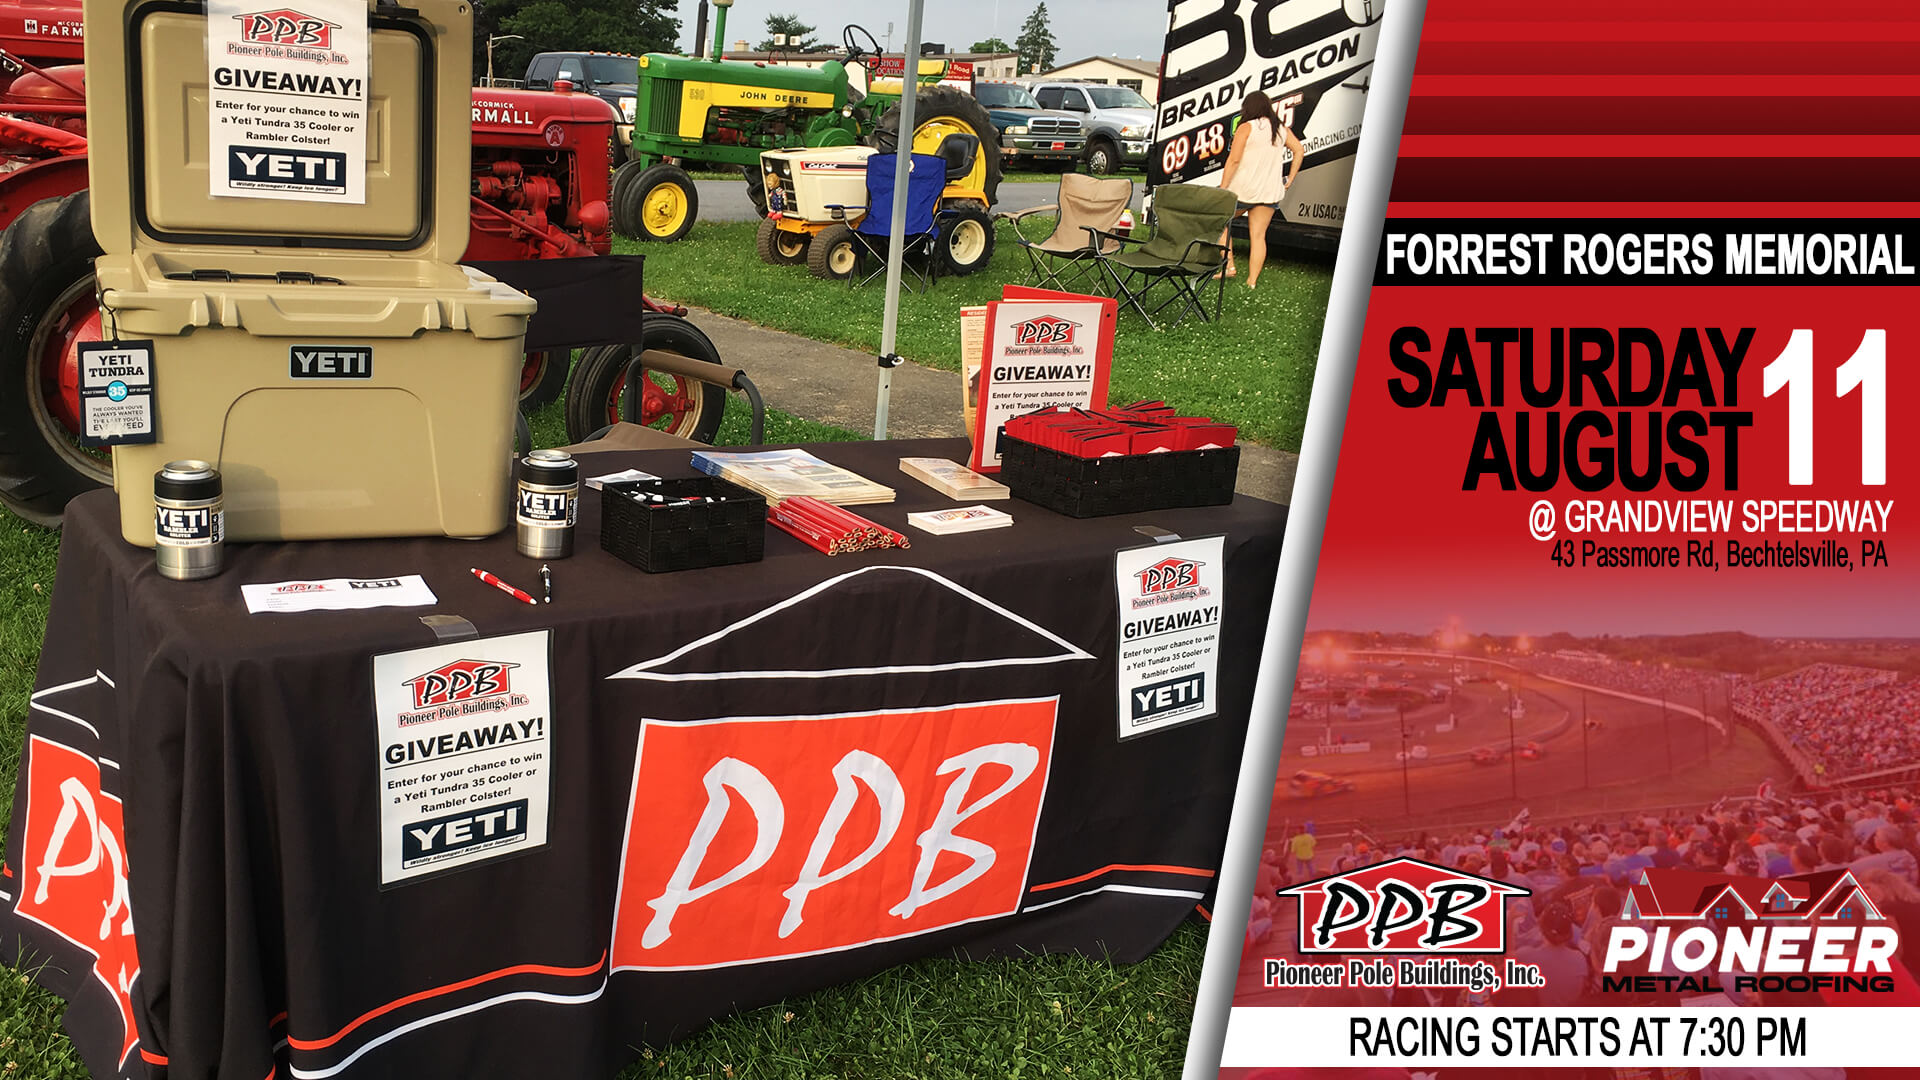 Pioneer Pole Buildings To Attend Forrest Rogers Memorial at Grandview Speedway